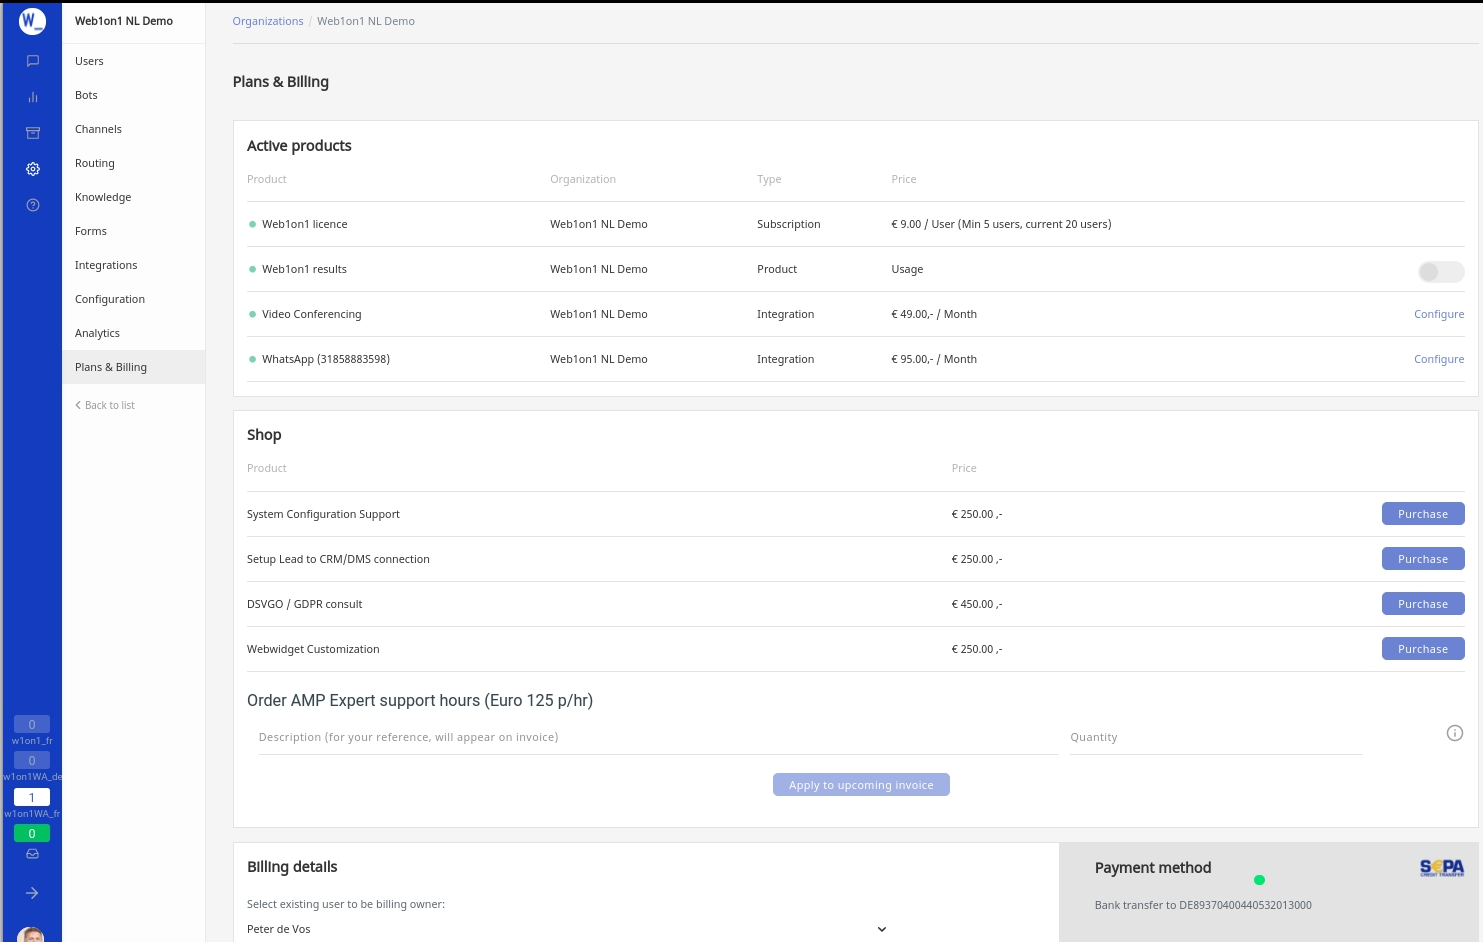 Web1on1 plans and billing page